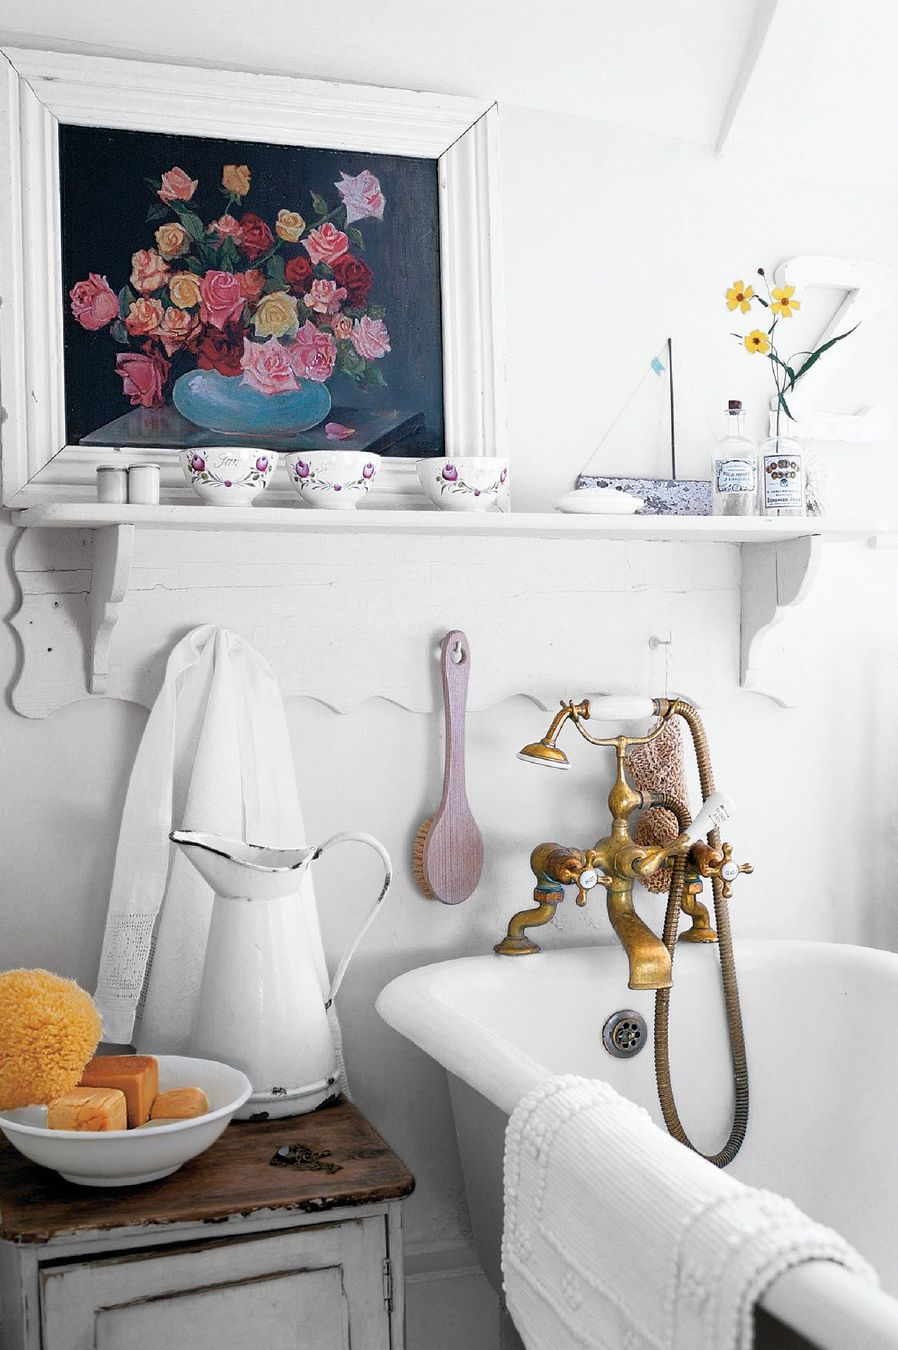 47 Rustic Bathrooms That Will Inspire Your Next Makeover ...